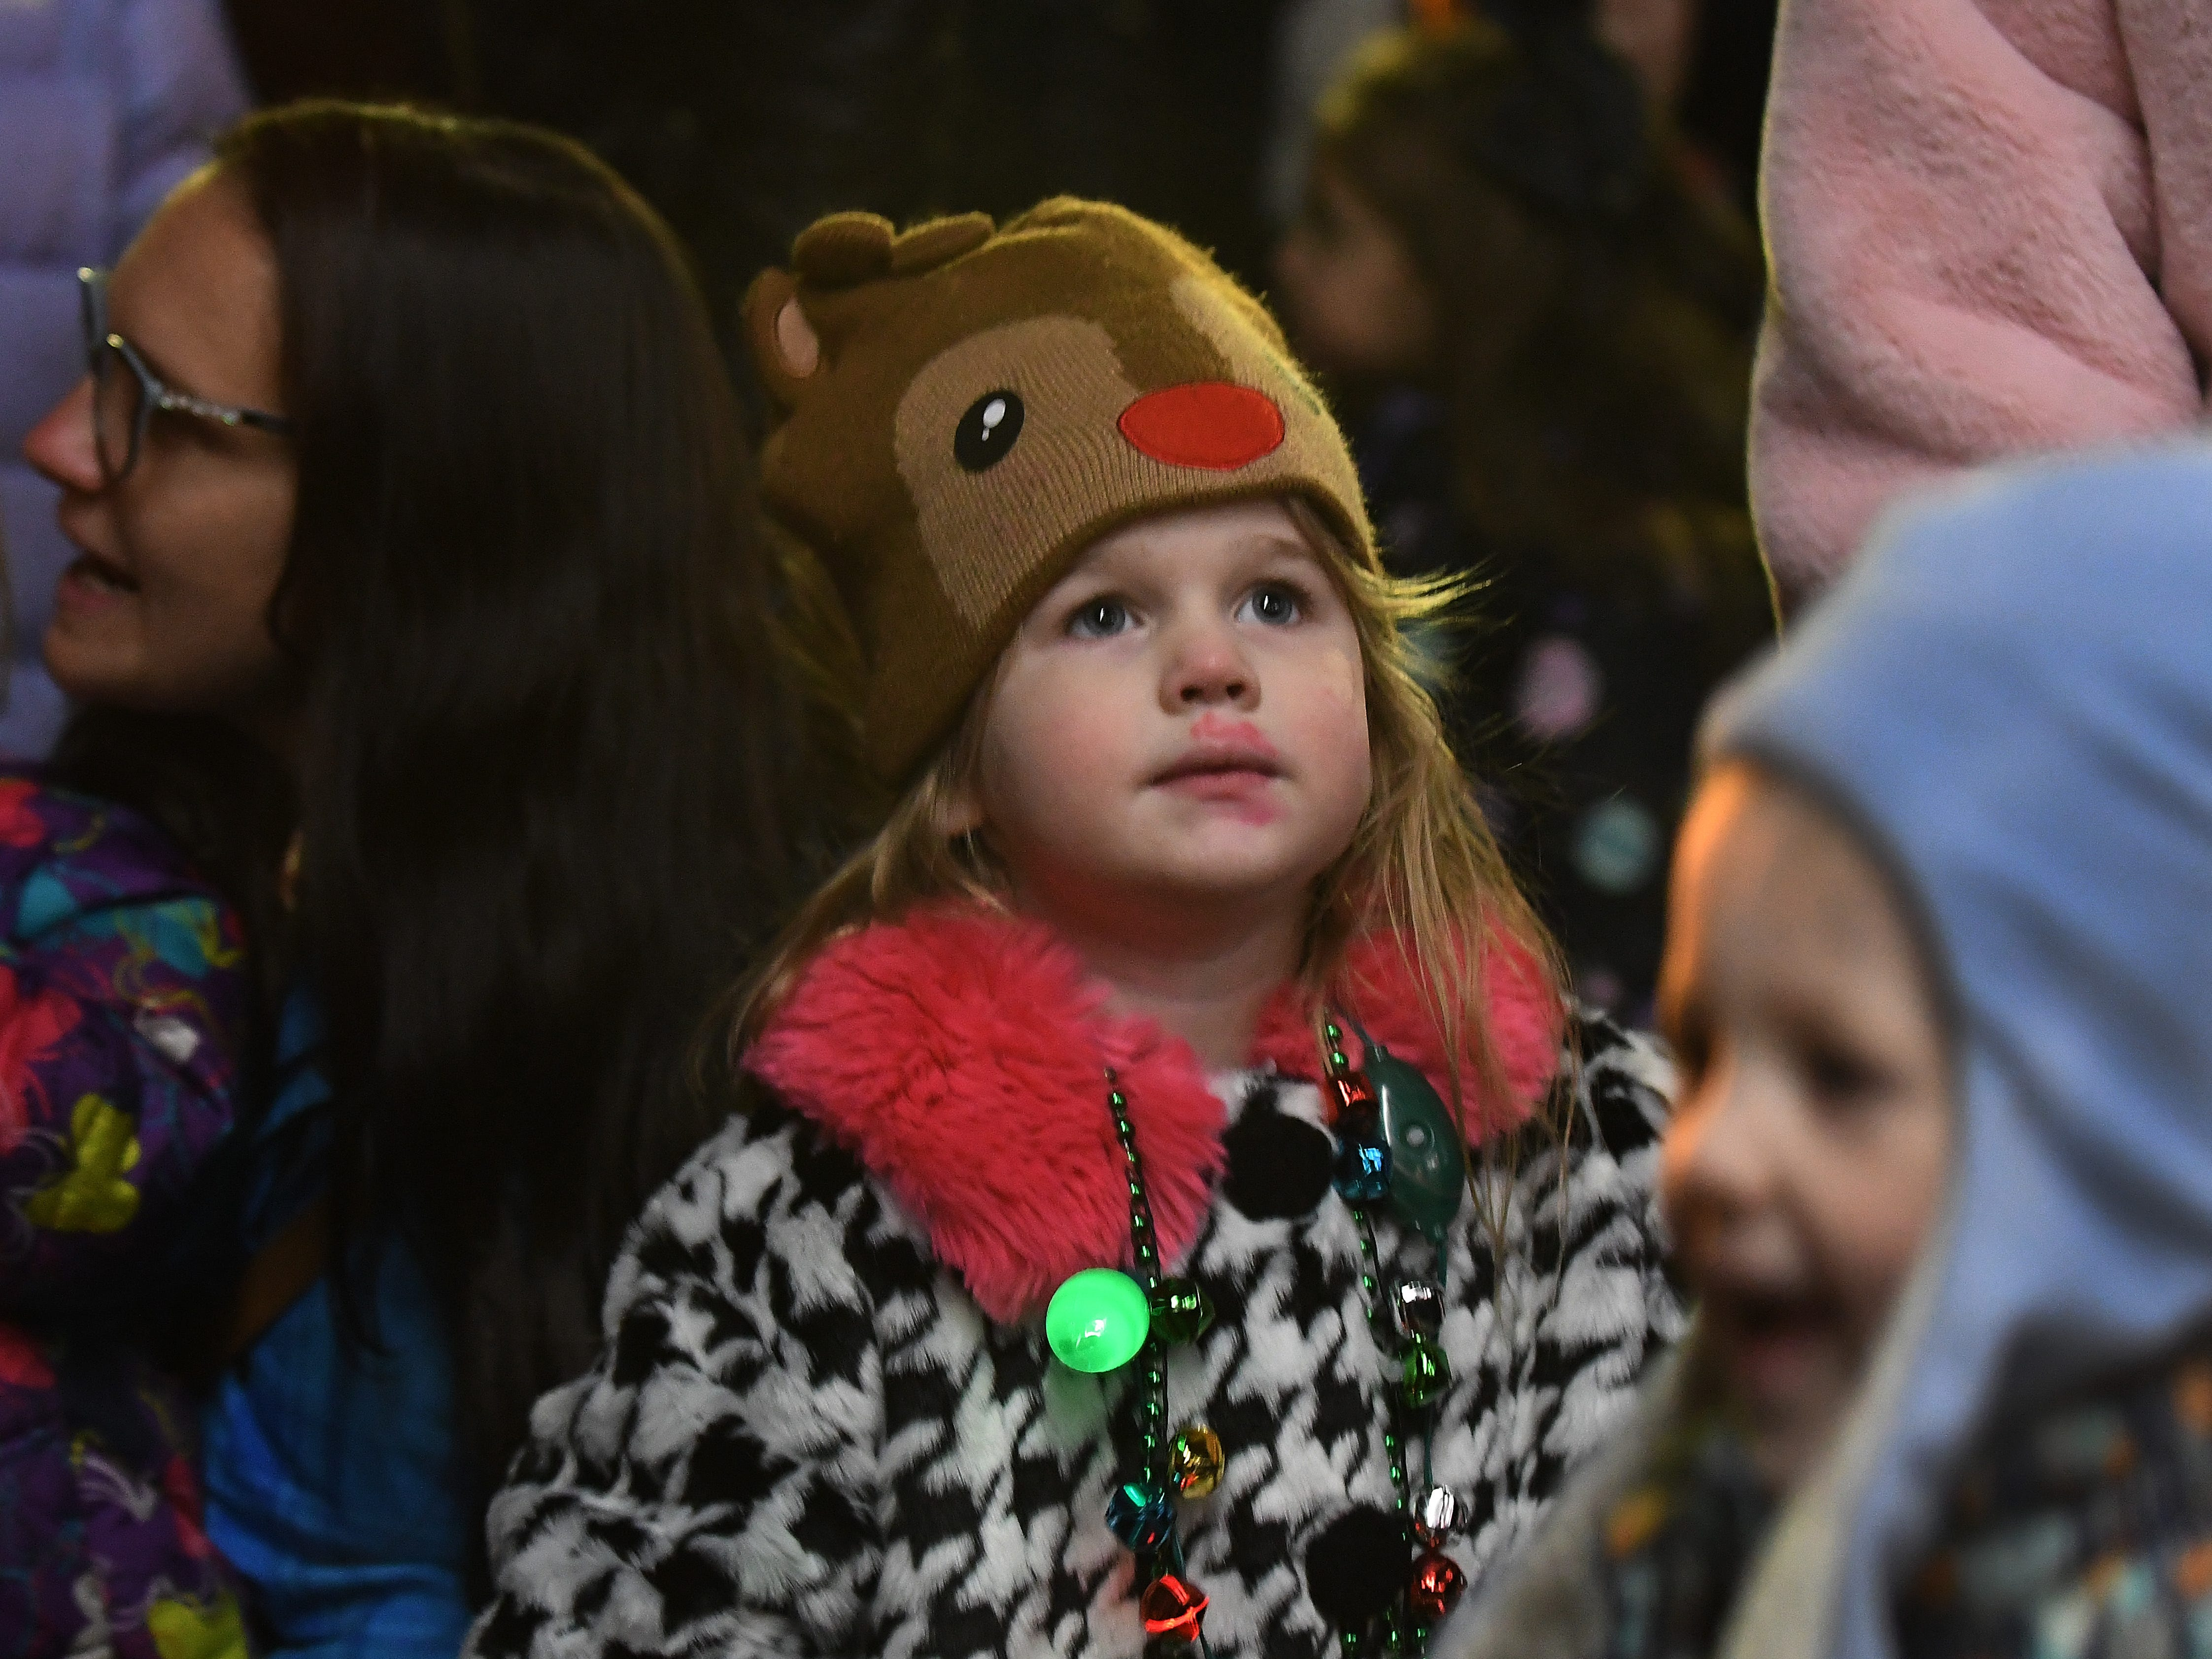 Ivy Savage, 3 listens to Christmas carols as she waits patiently for Santa Claus to arrive during the Big, Bright Light Show in downtown Rochester.